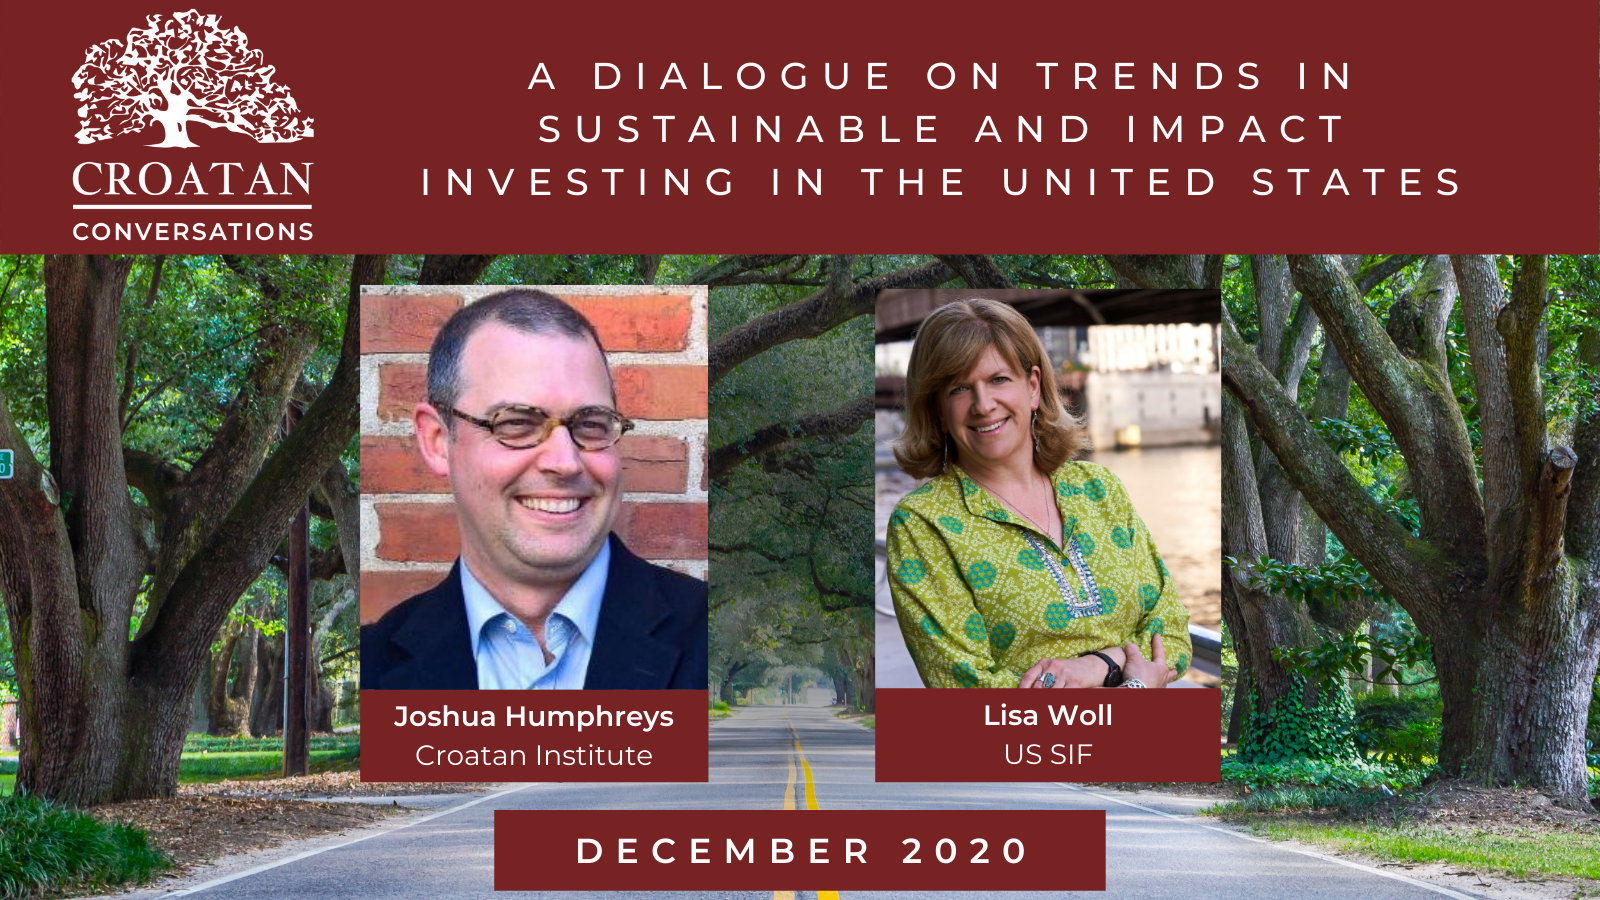 A Dialogue on Trends in Sustainable and Impact Investing in the United States